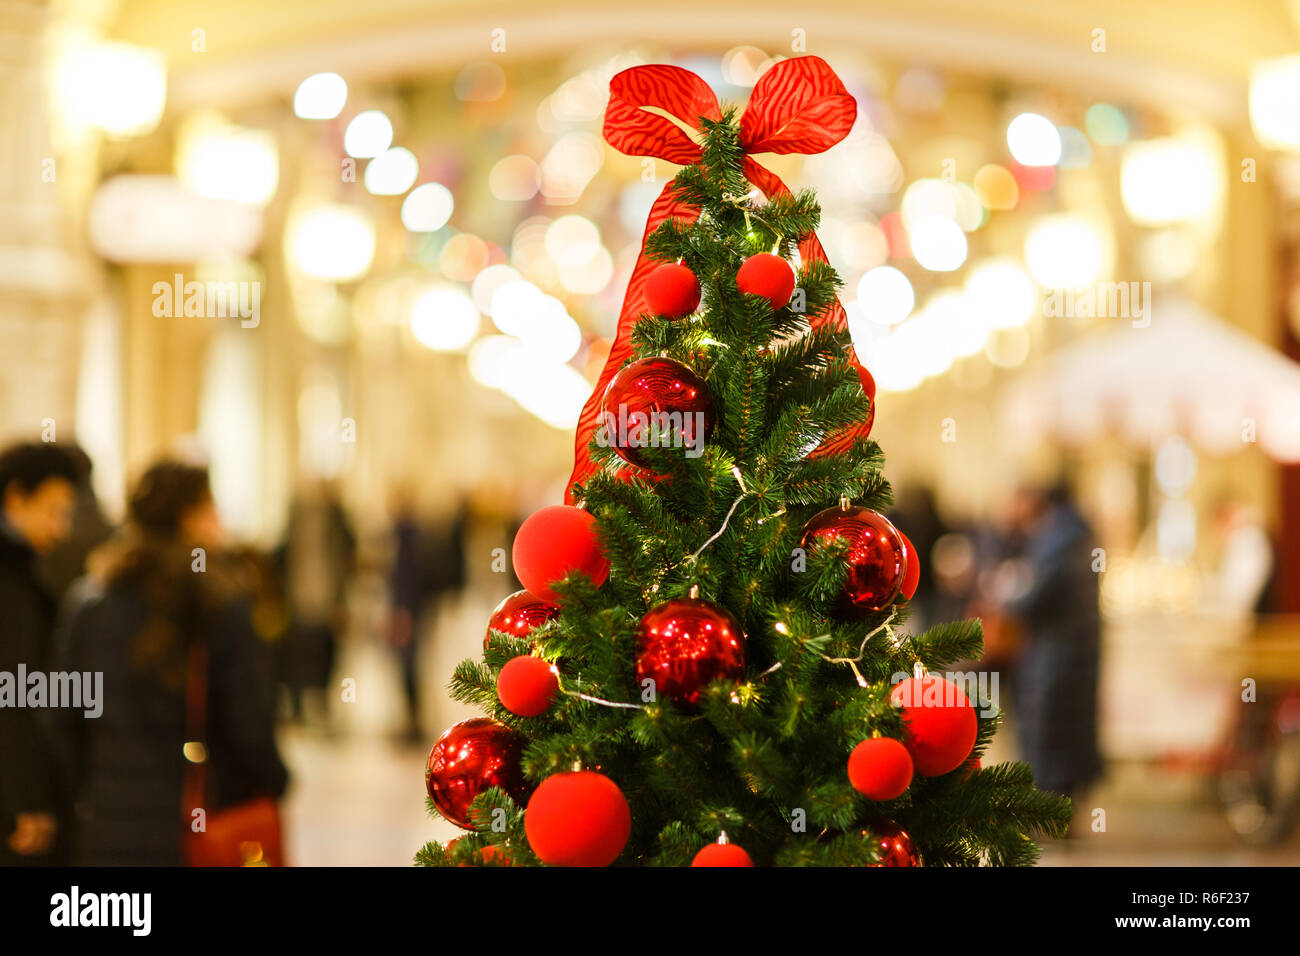 Photo of Christmas tree with red balls on blurred background. - Stock Image